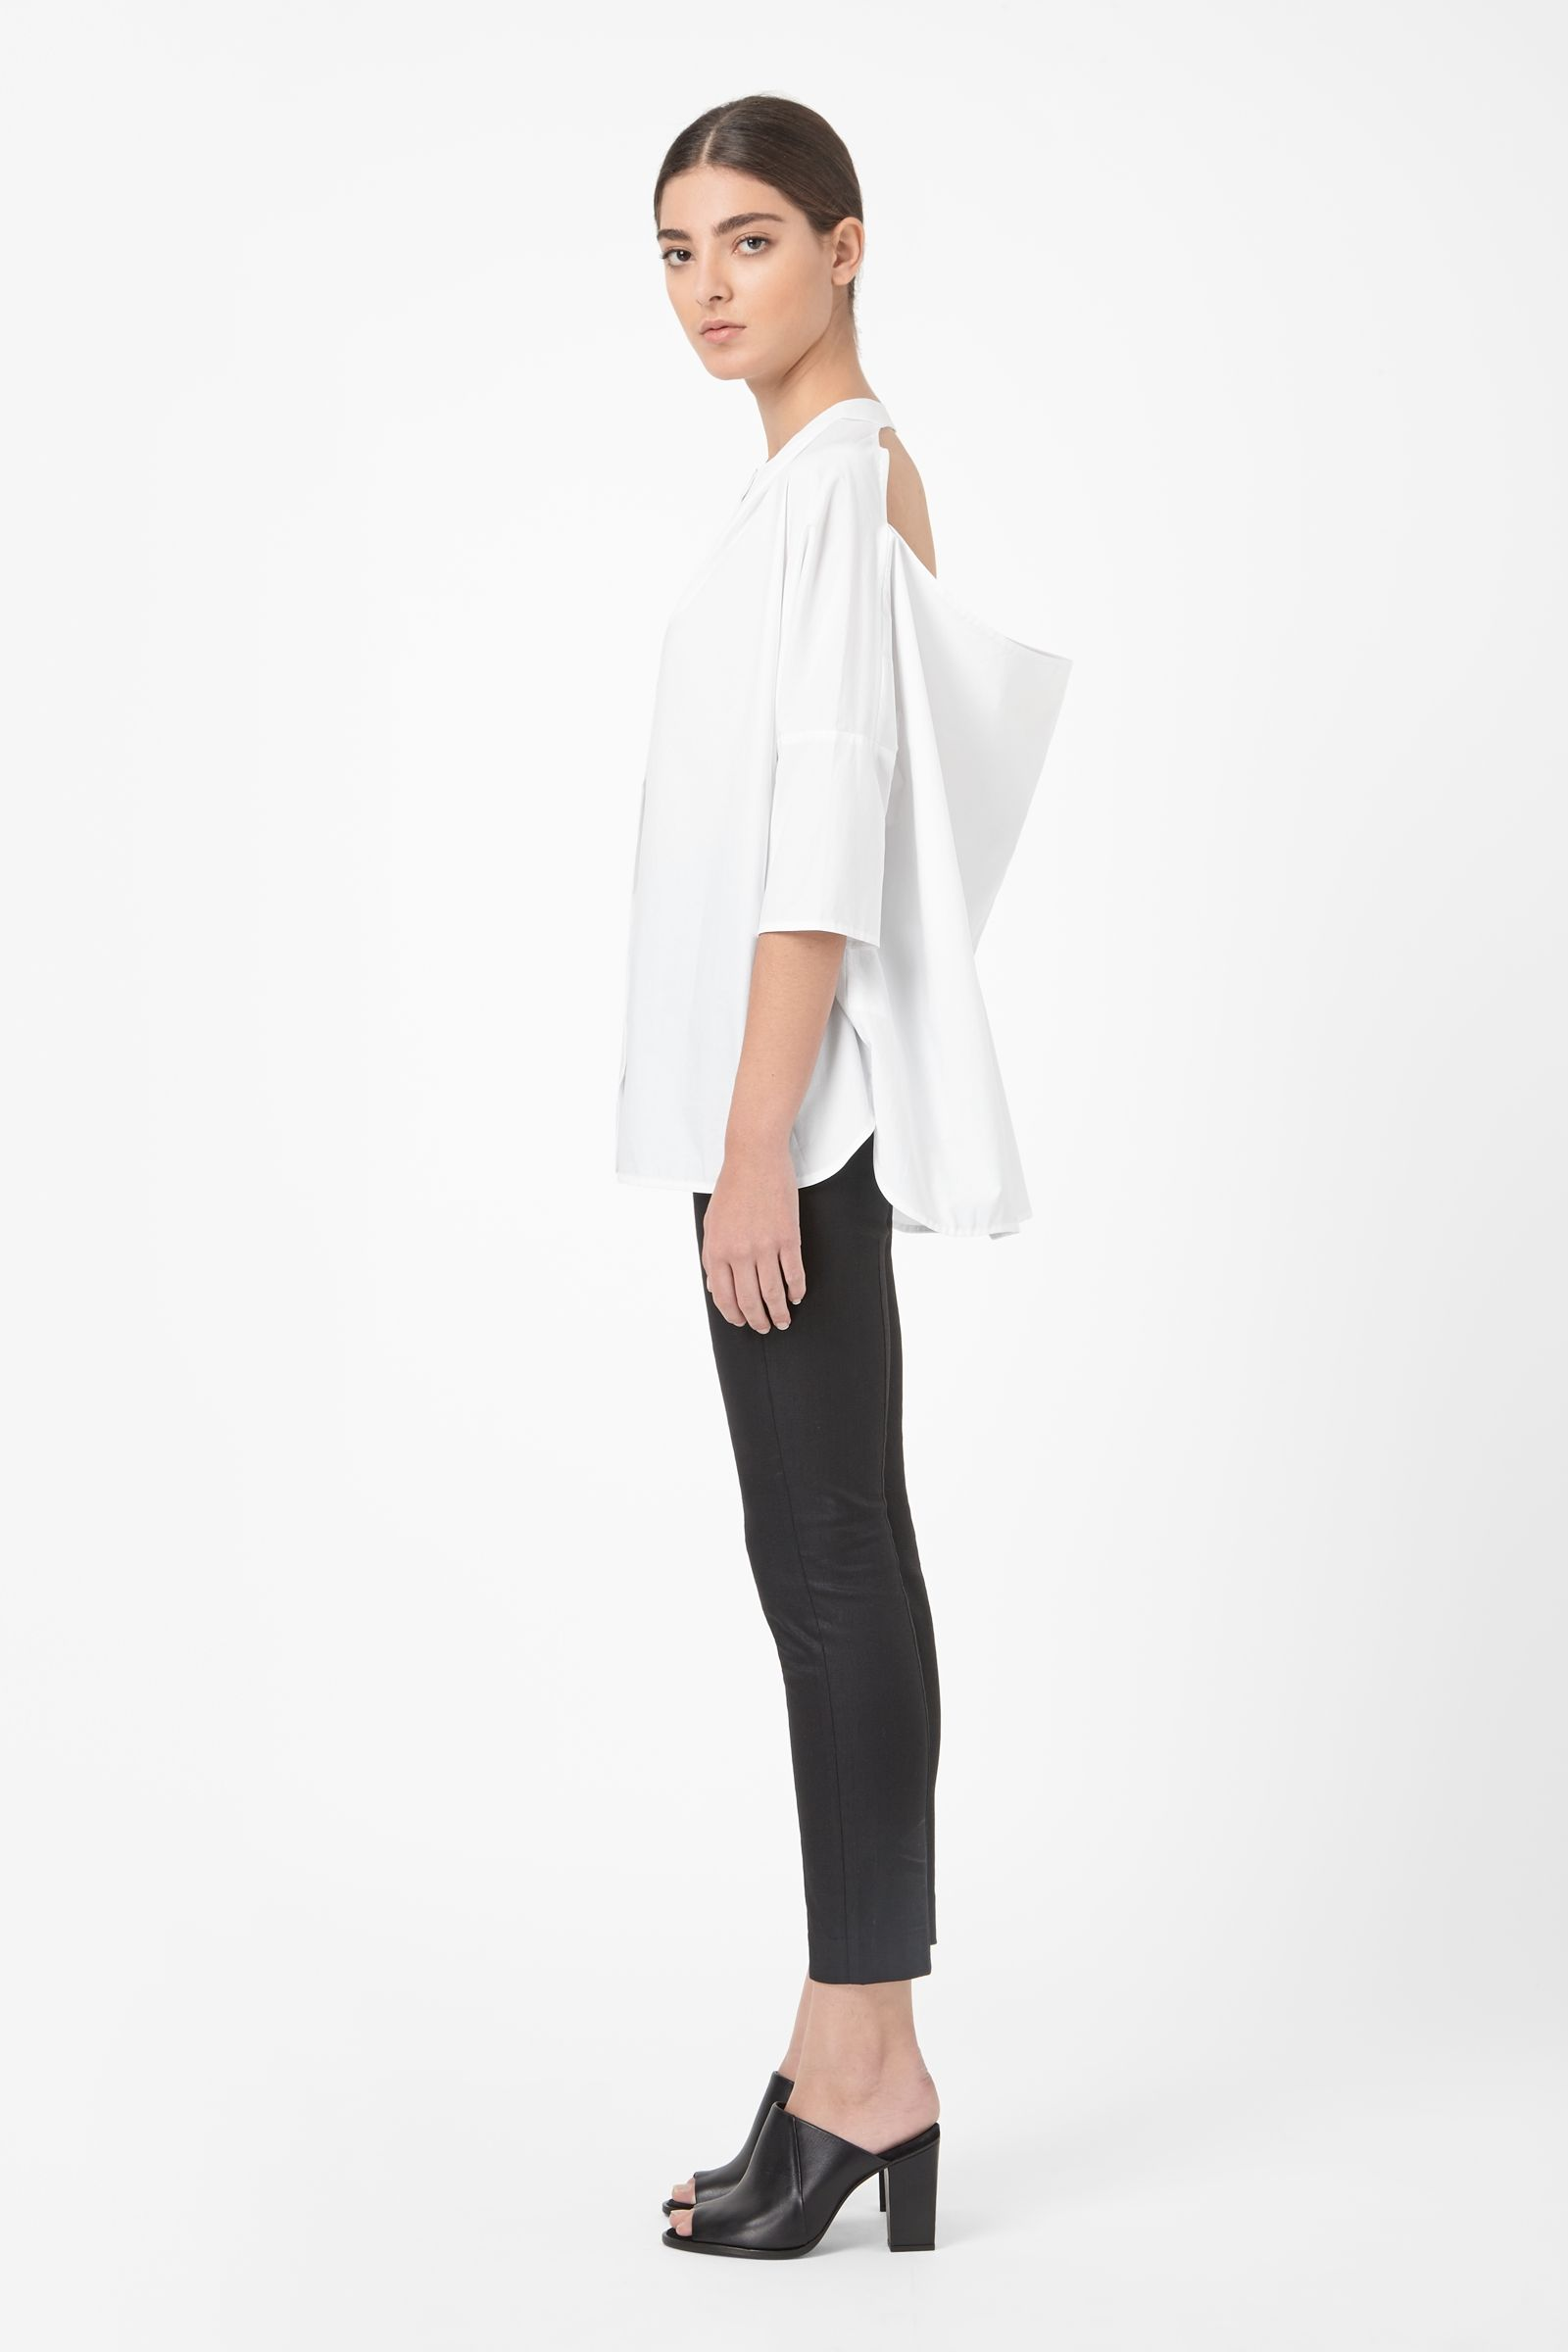 8b0fbf1c7c8c COS - Shirt with open back | Go chic with a great white blouse ...